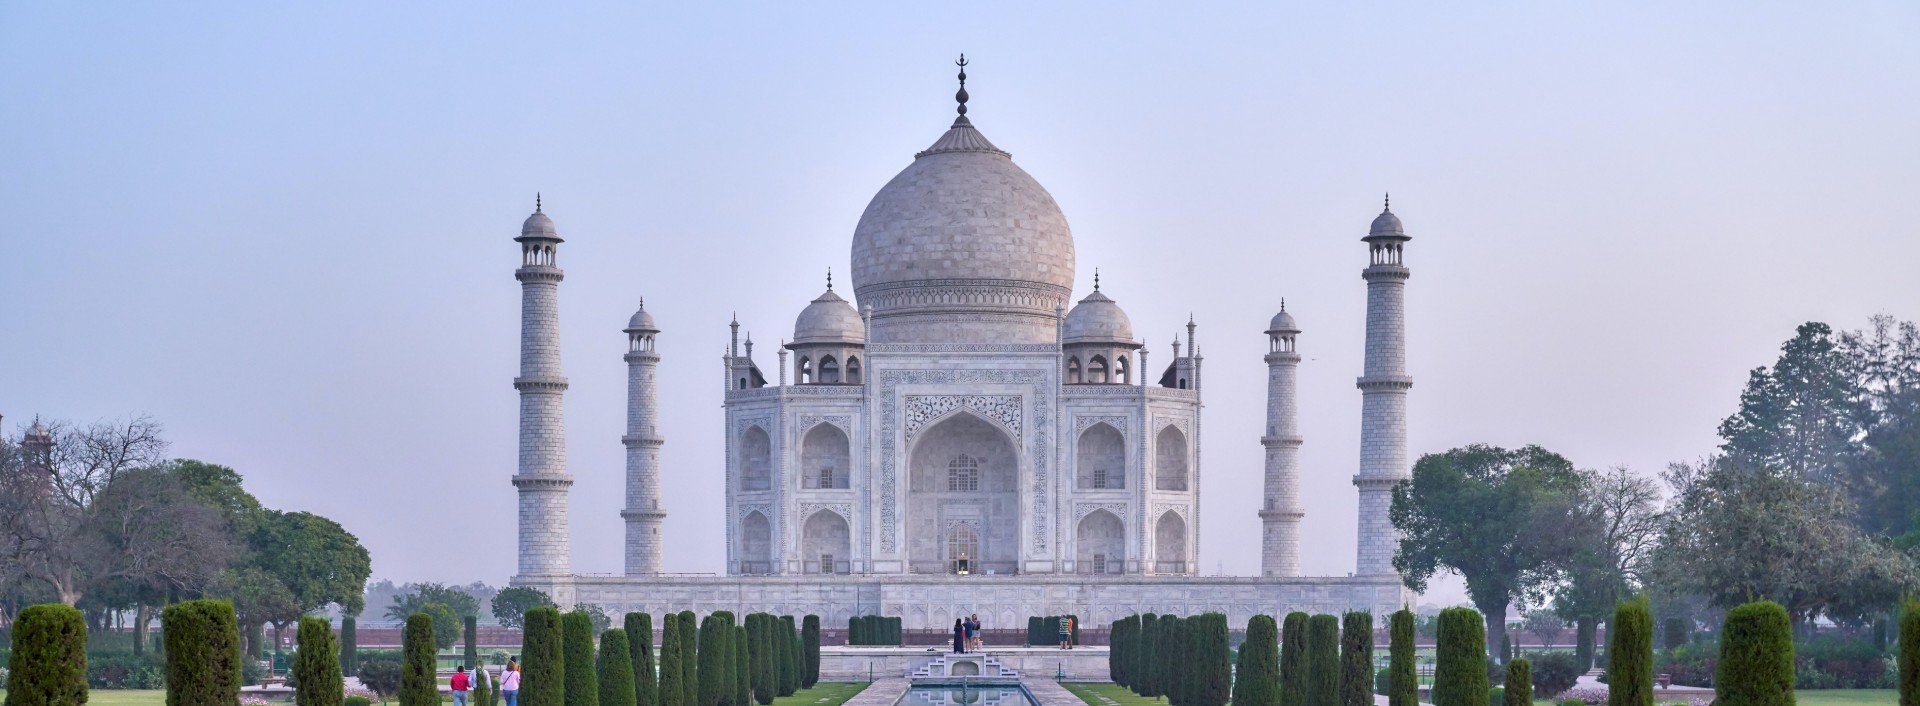 Hindi loan words: The Taj Mahal, a famous landmark in India, is shown at sunset with no people around.